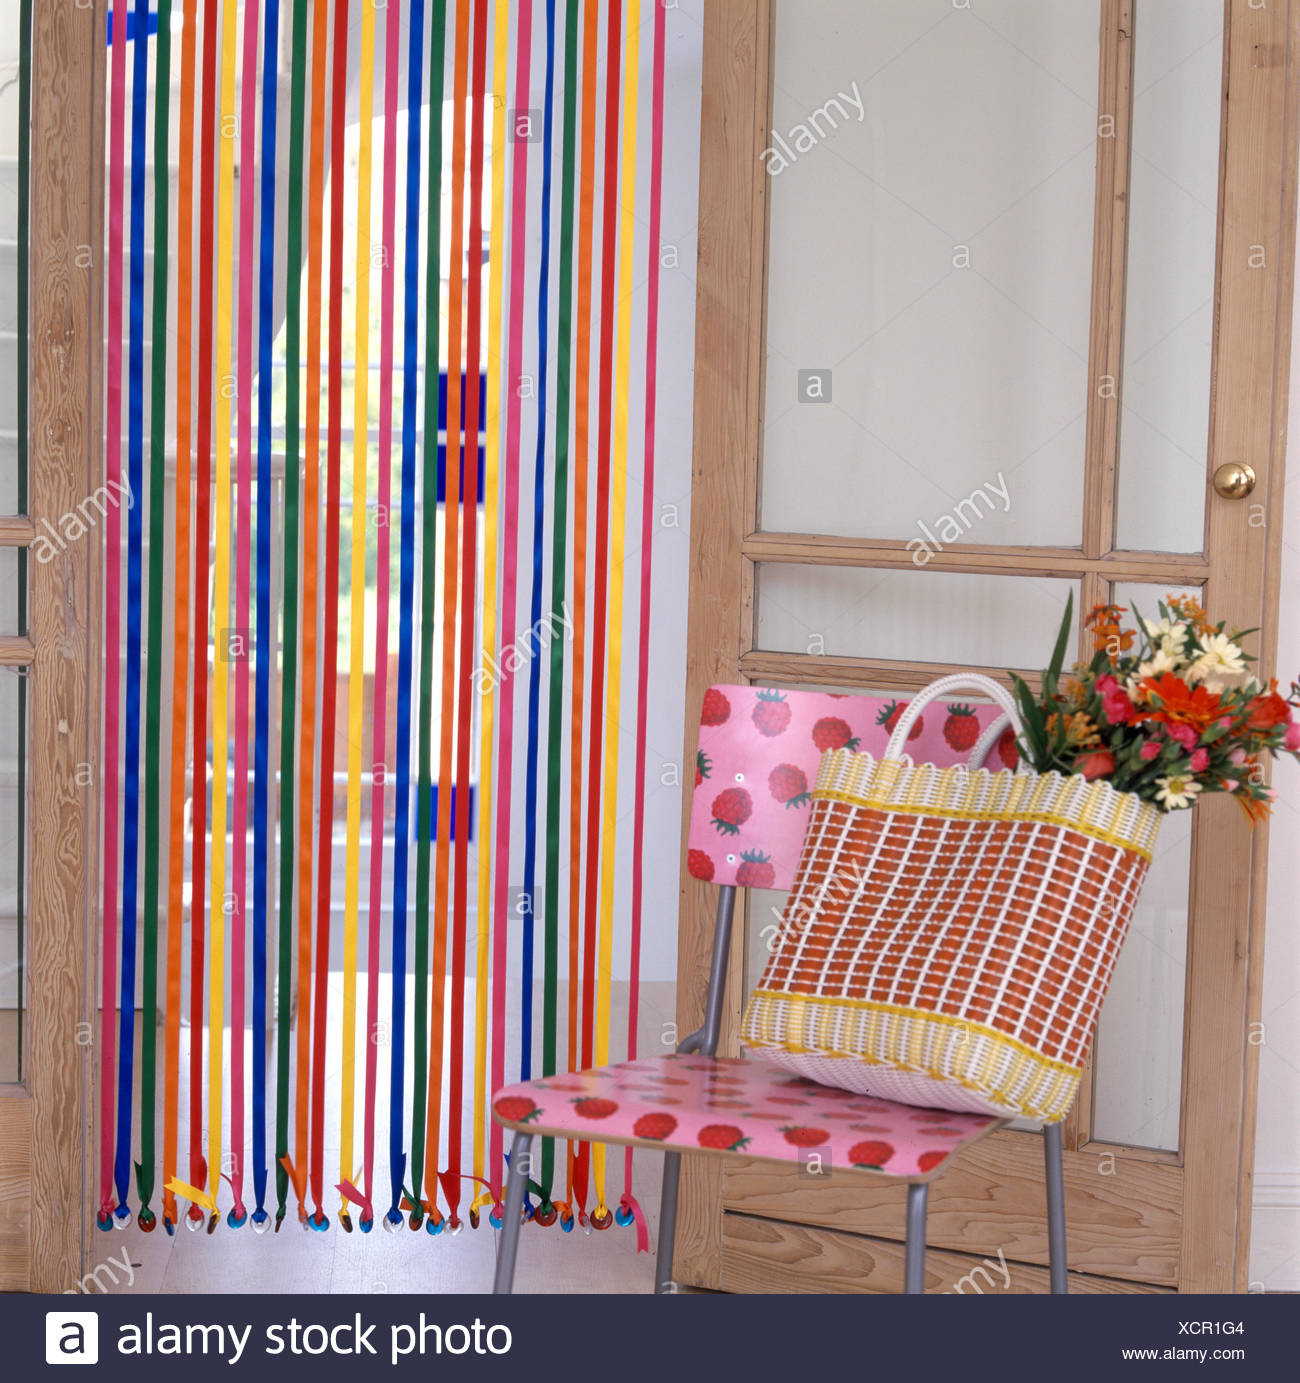 https www alamy com shopping bag on modern plastic chair in front of ribbon and bead curtain image283247892 html